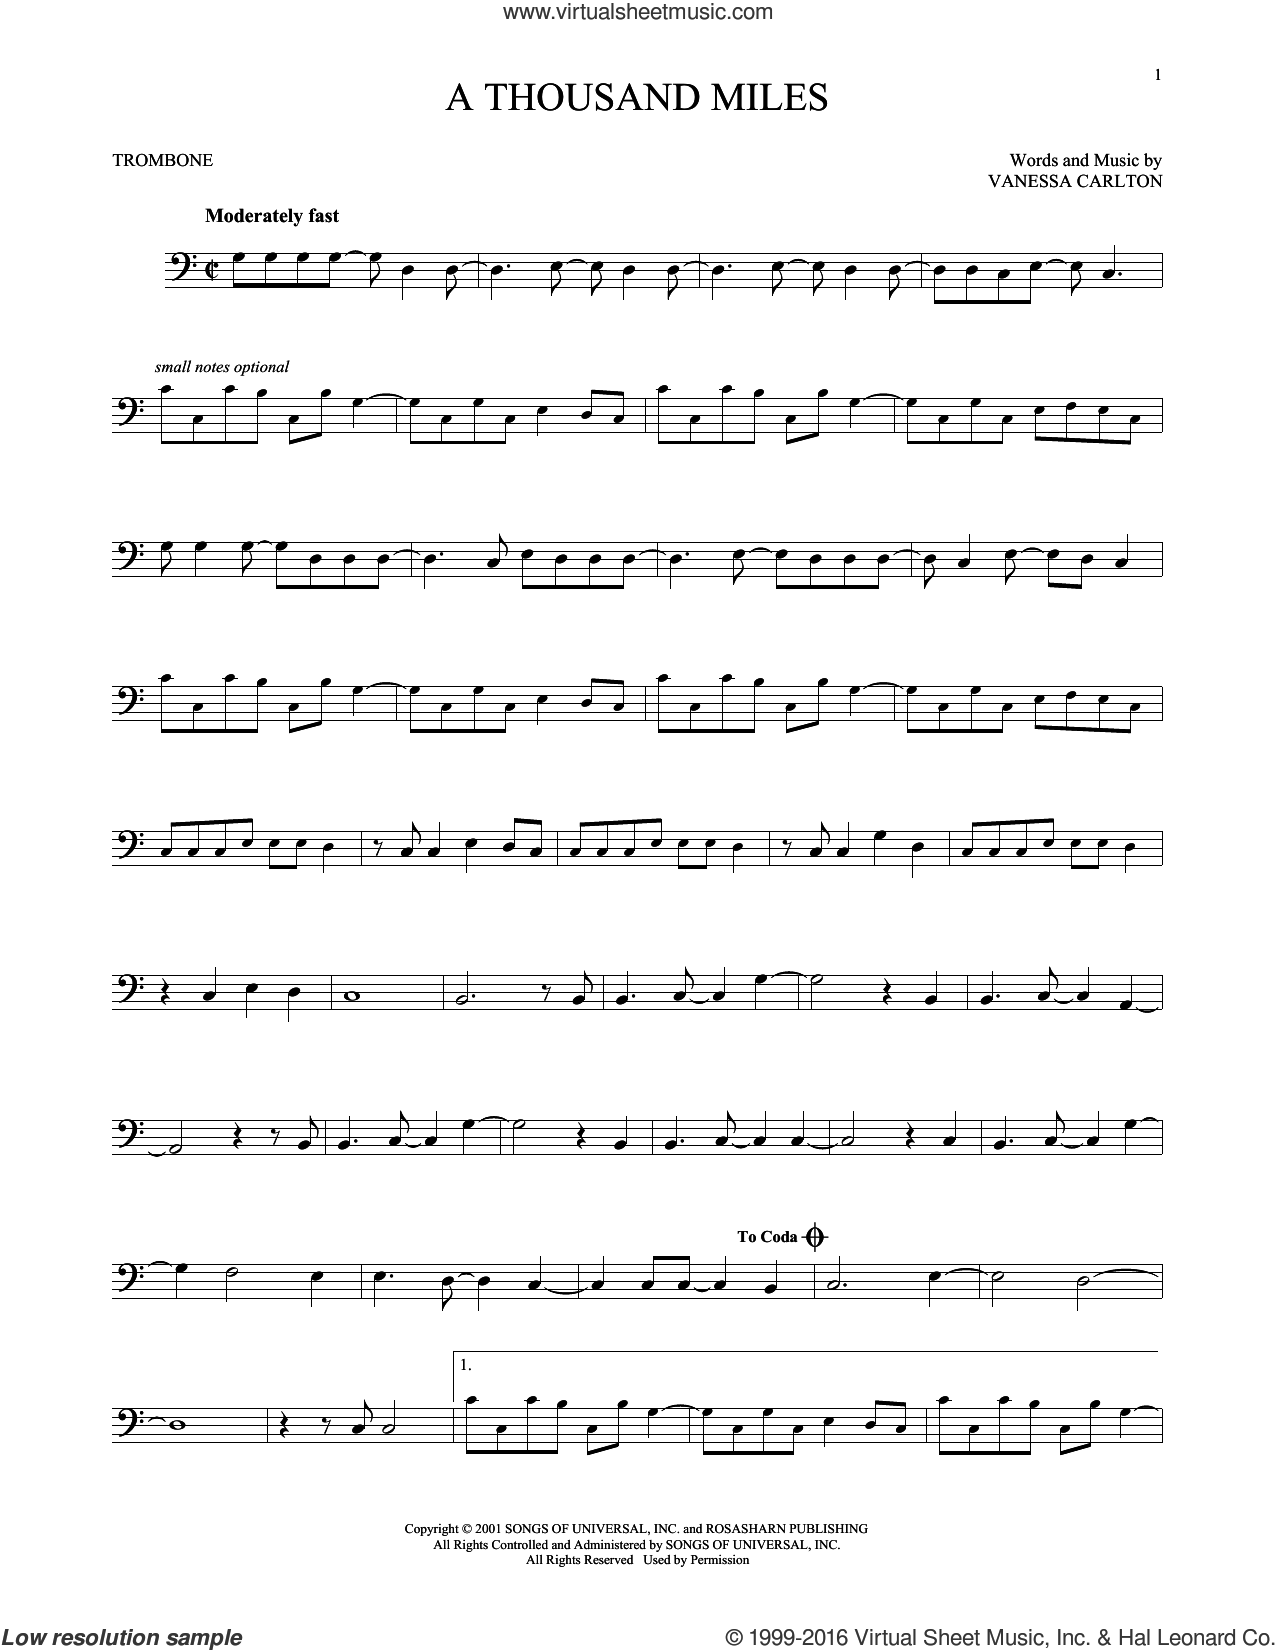 A Thousand Miles sheet music for trombone solo by Vanessa Carlton, intermediate skill level